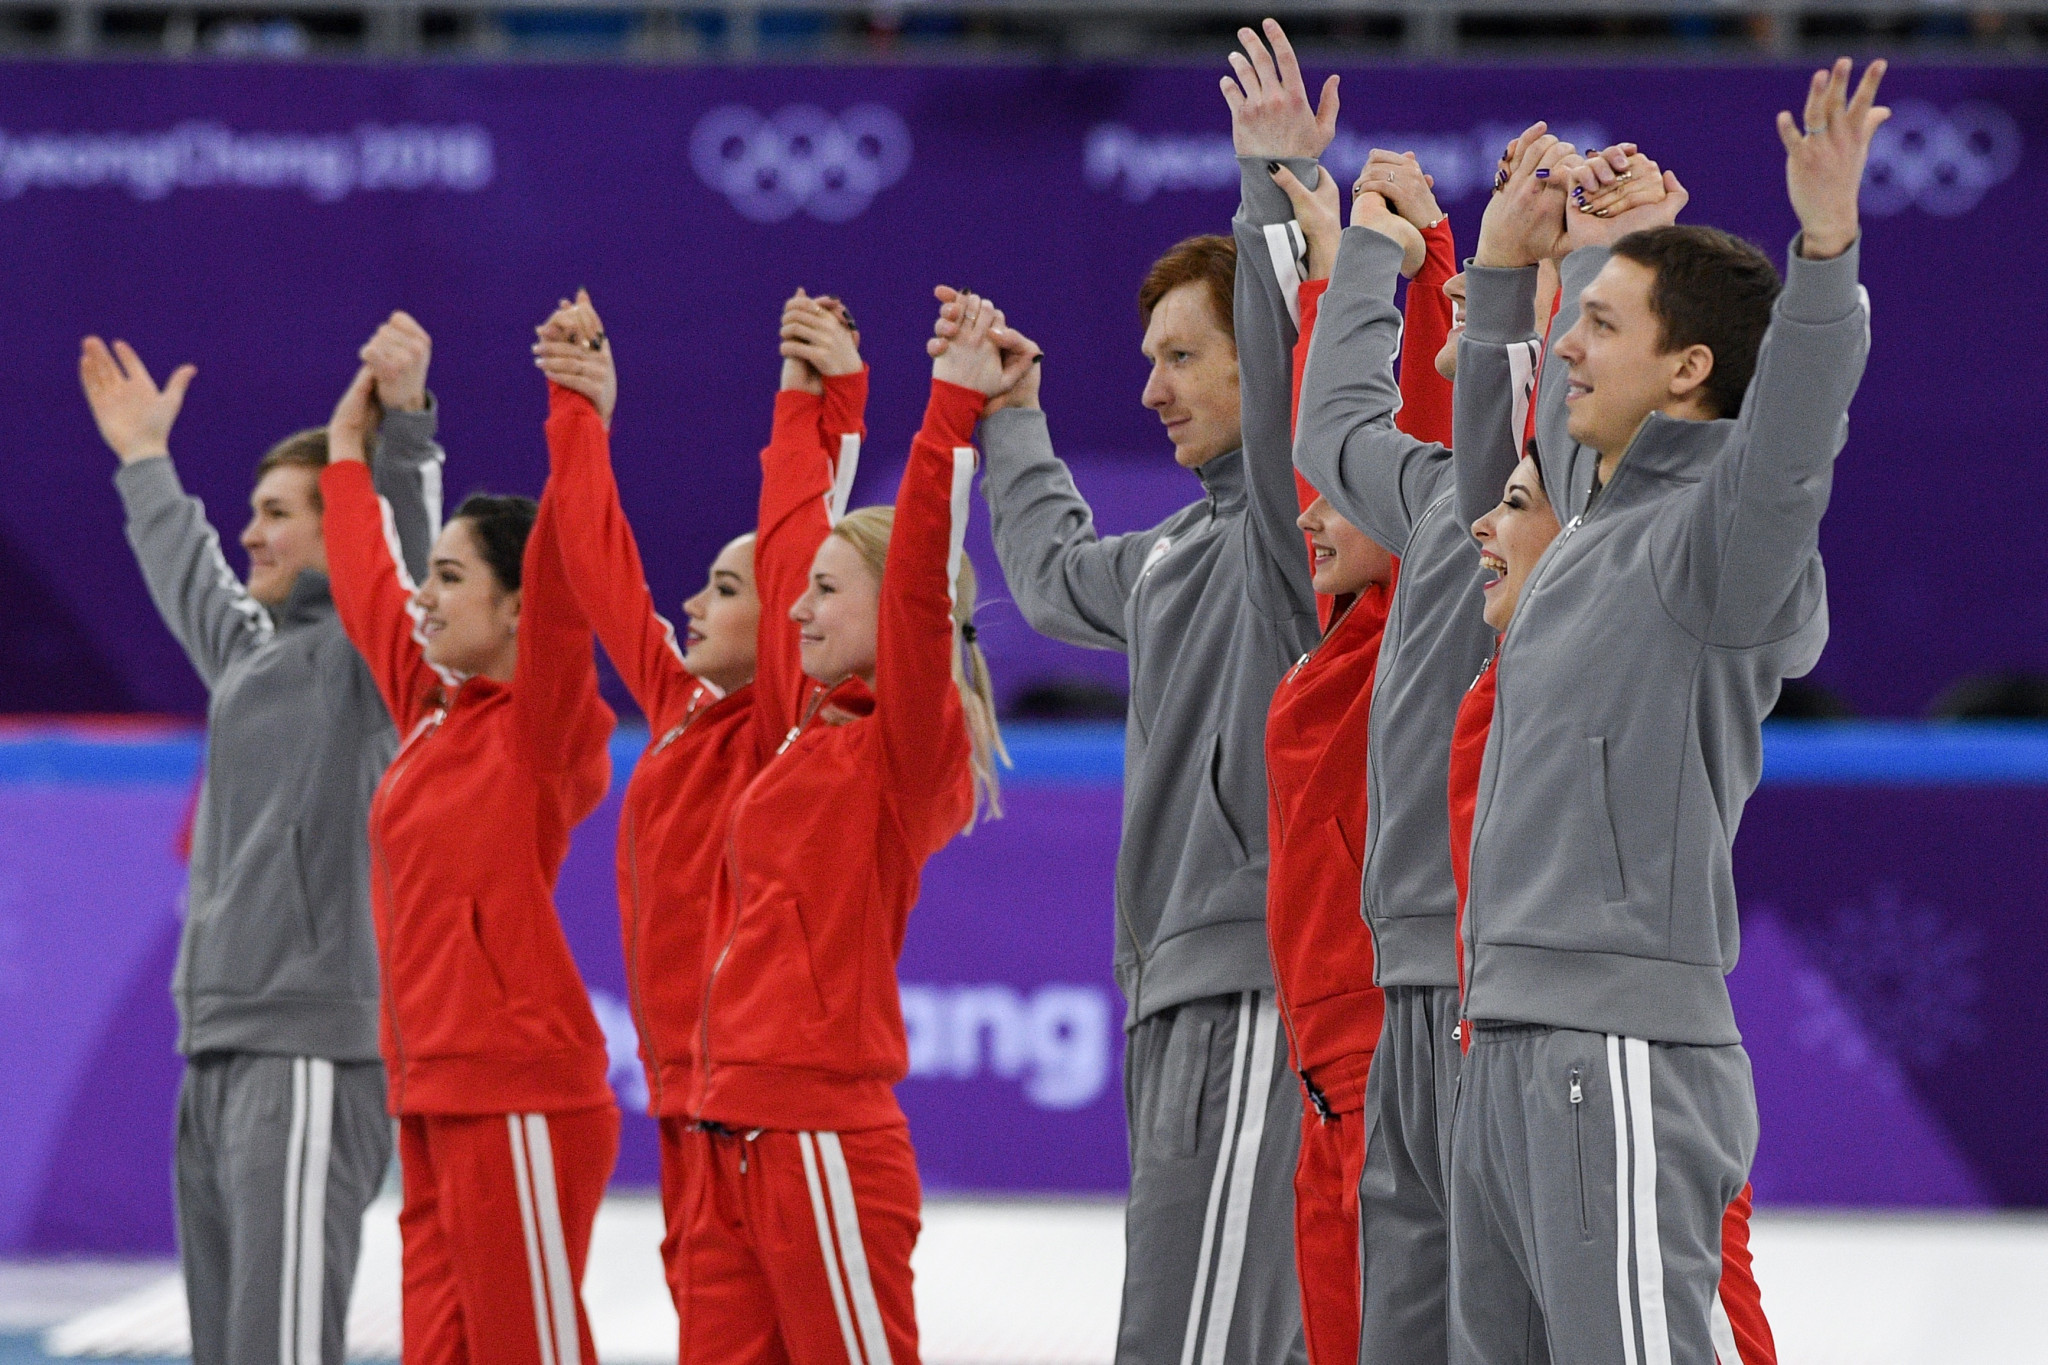 Russian skaters lead respects as special mourning area created in Olympic Village after Moscow plane crash